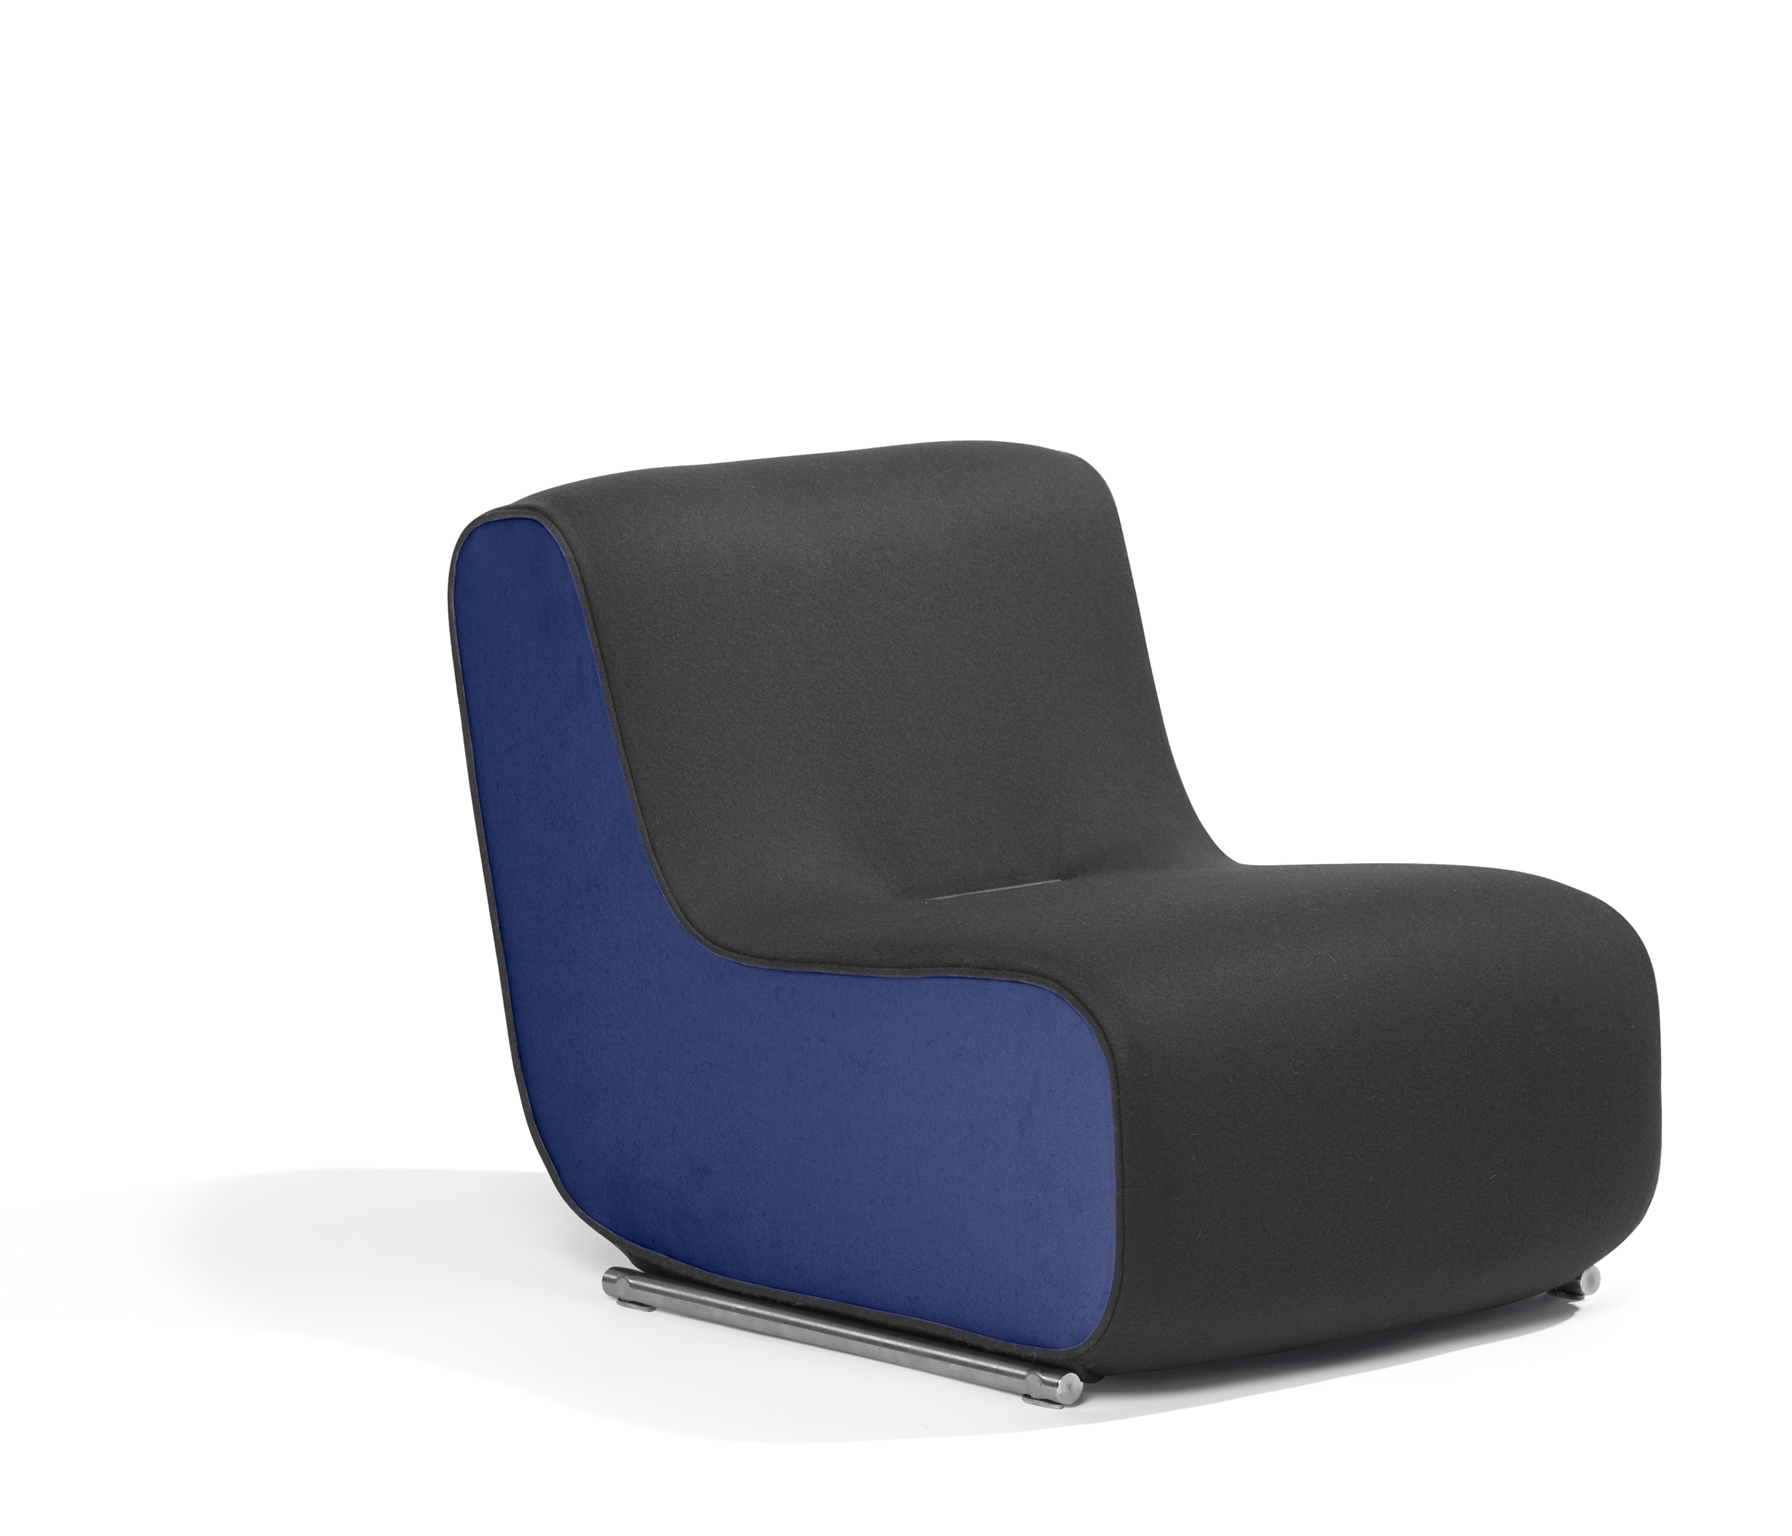 Hertel U0026 Klarhoefer Has Designed The Easy Chair/section Sofa Ally. You Can  Connect And Disconnect Ally Modules Easily Yourself, Thanks To The Fixed  Magnetic ...